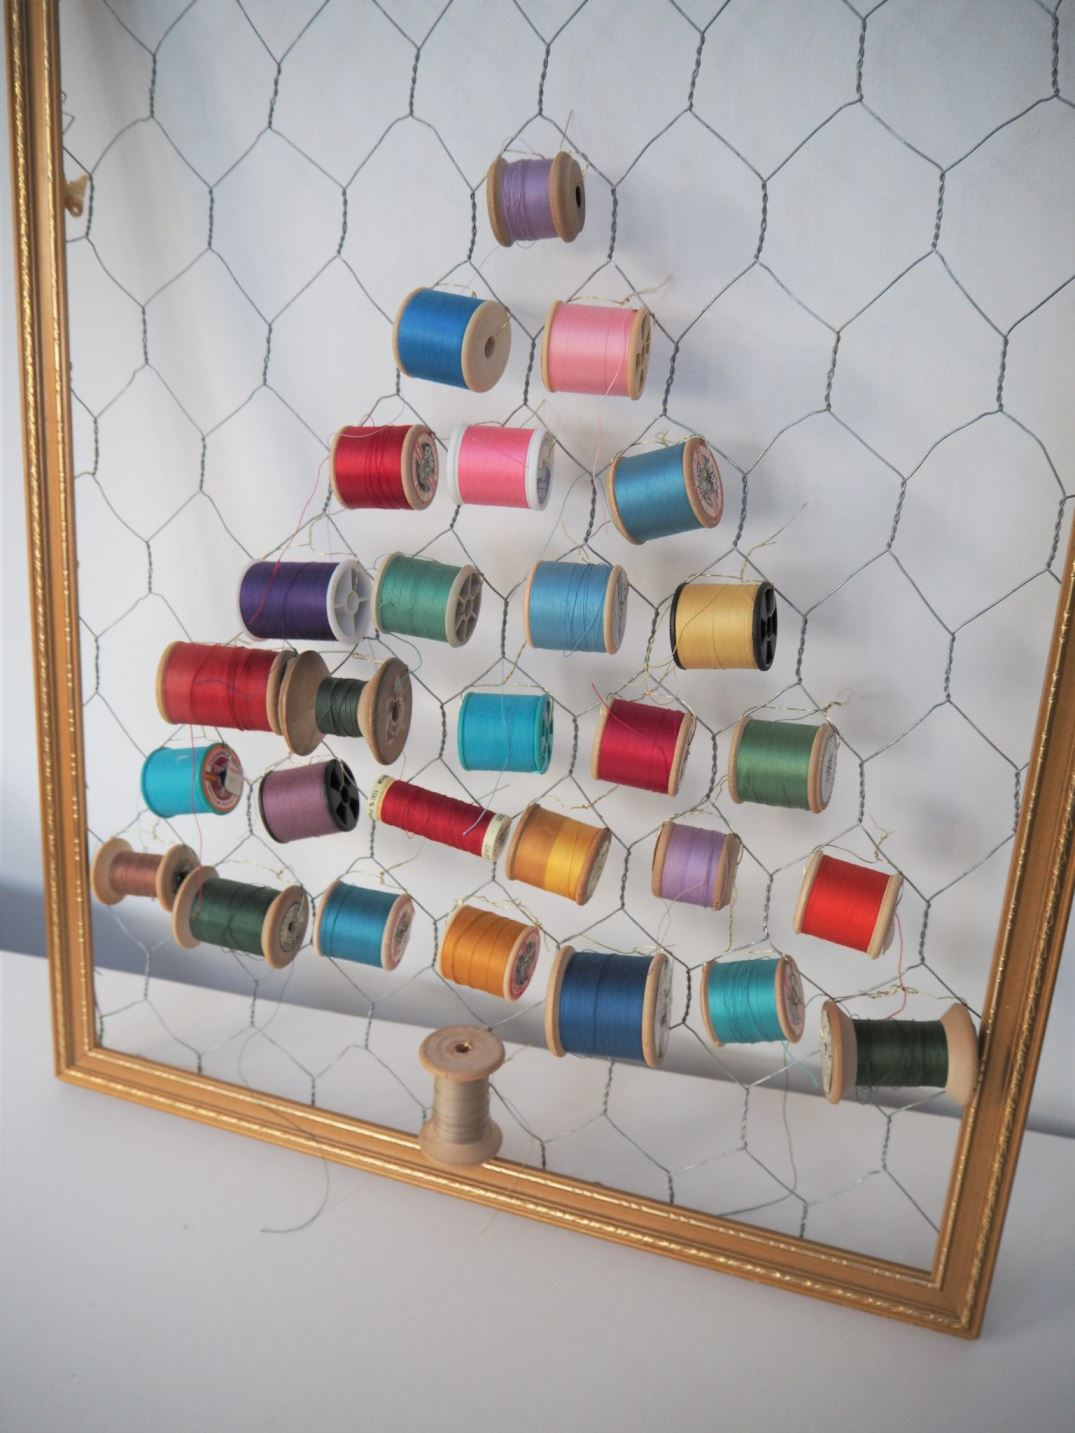 How to make an upcycled cotton reel Christmas tree